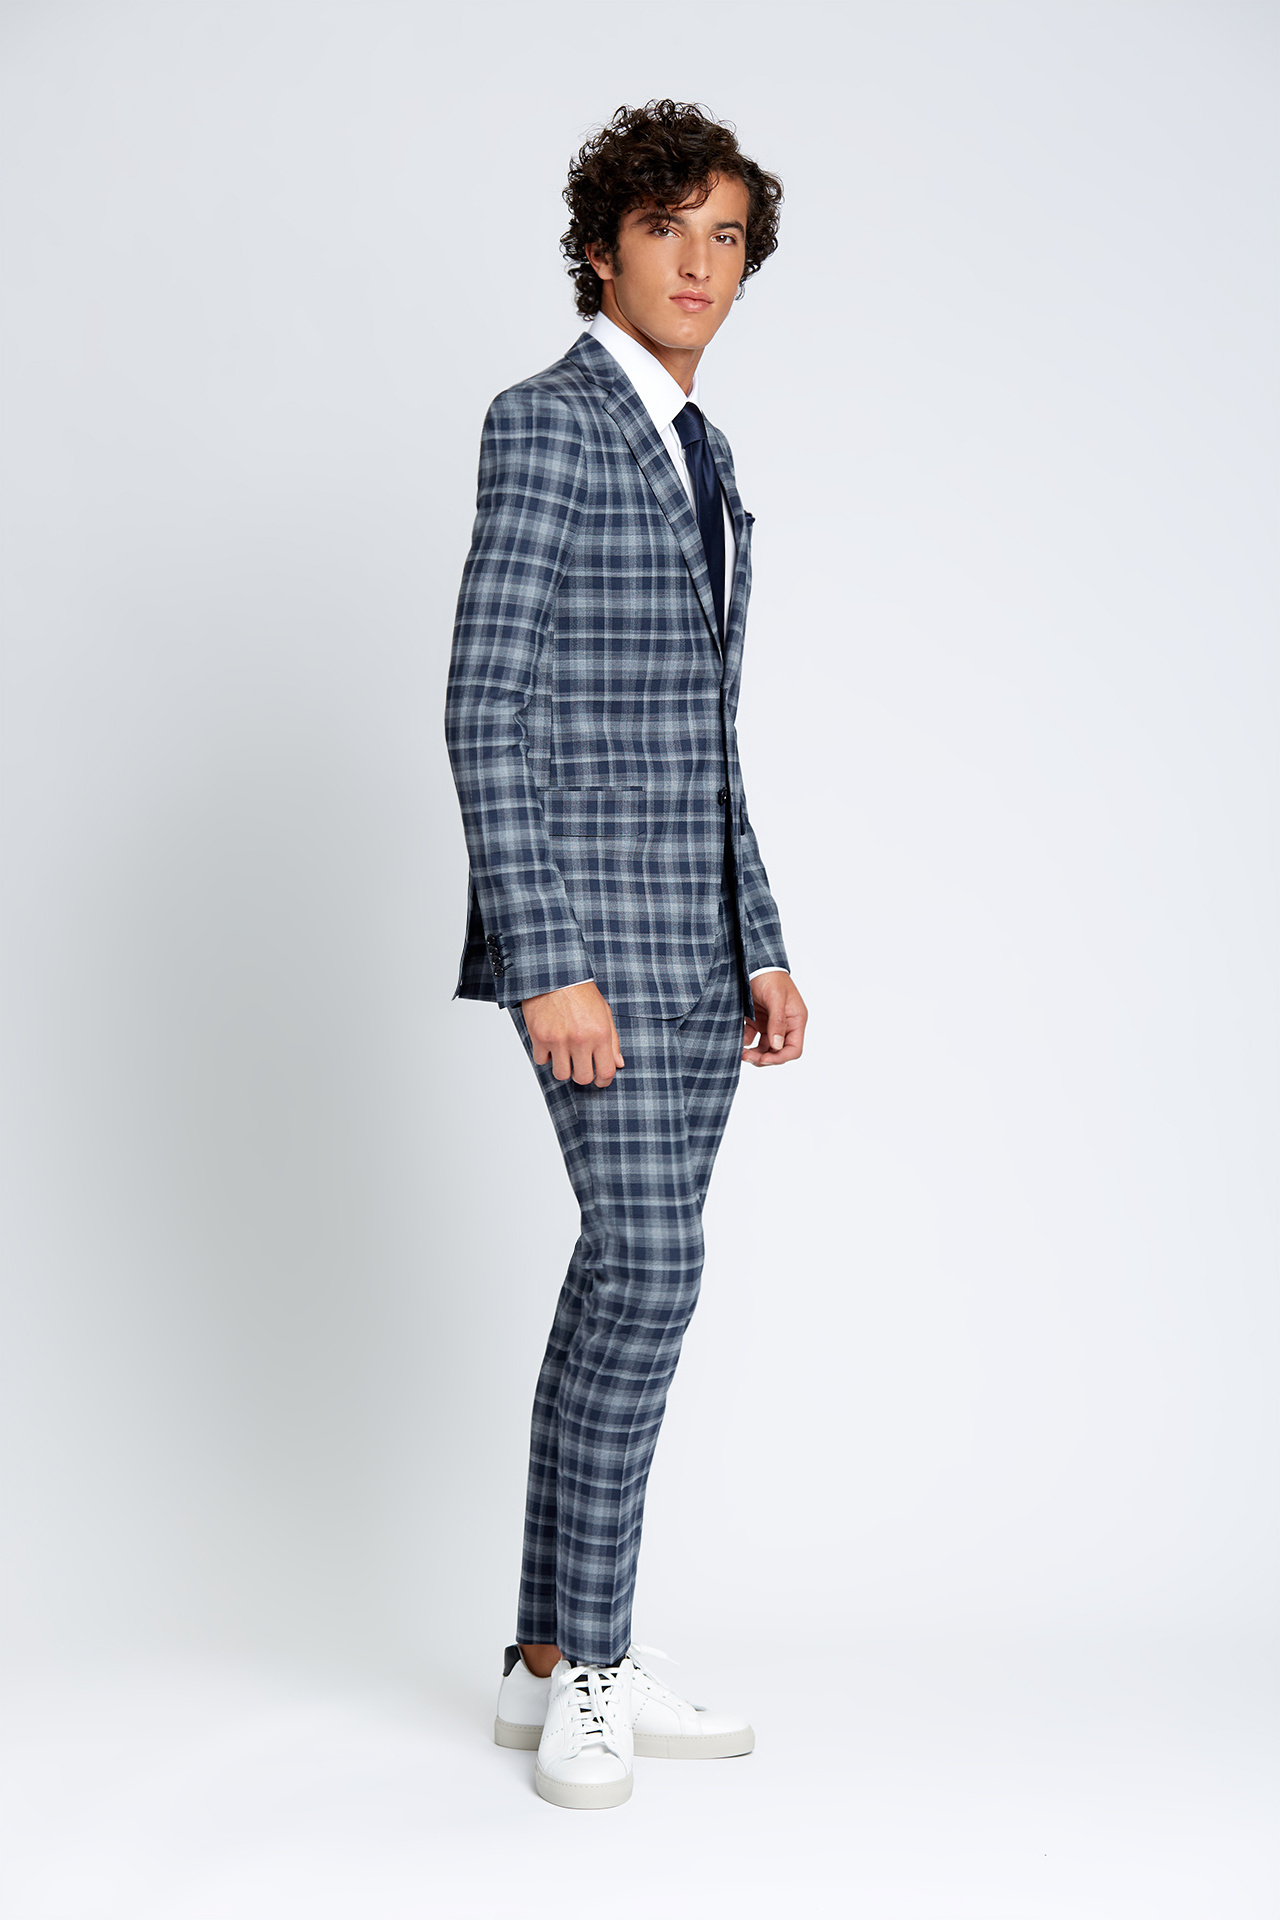 Slim-fit Four Season Wool 2-Piece Suit in Large Navy Grey Check